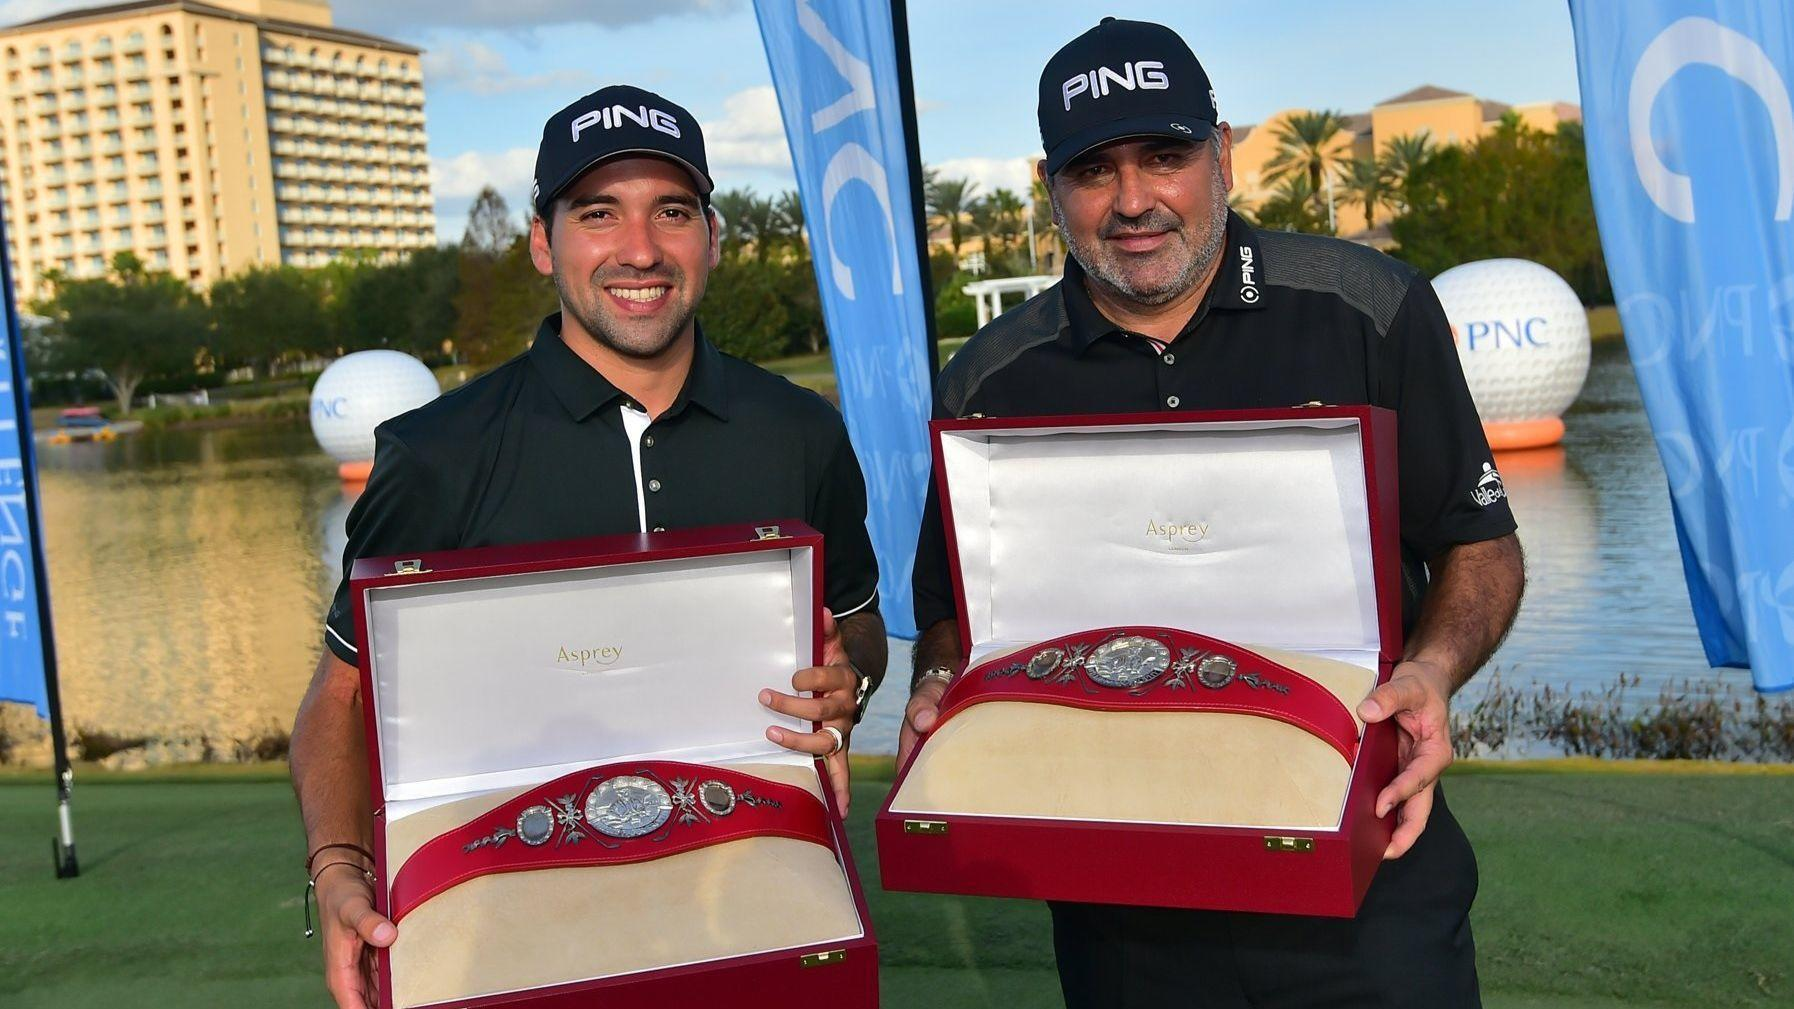 os-sp-father-son-golf-final-round-1218